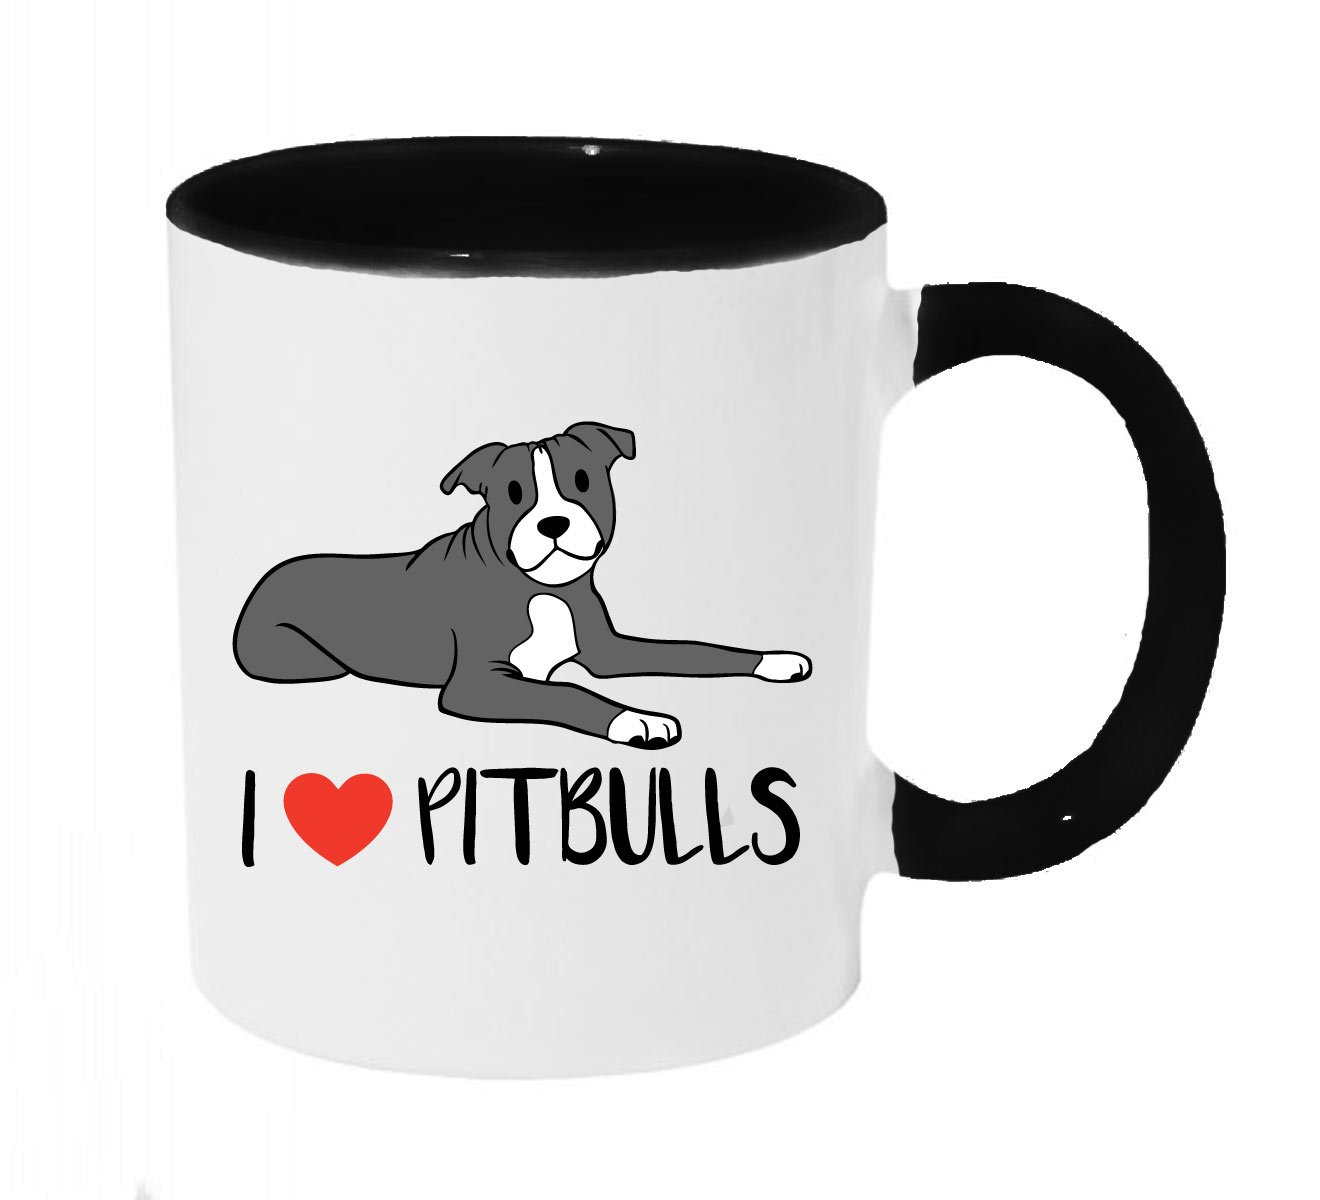 I Heart Pitbulls Coffee or Tea 11oz Mug - Perfect Gift for Dog and Animal Lovers (Blue and White Pit)